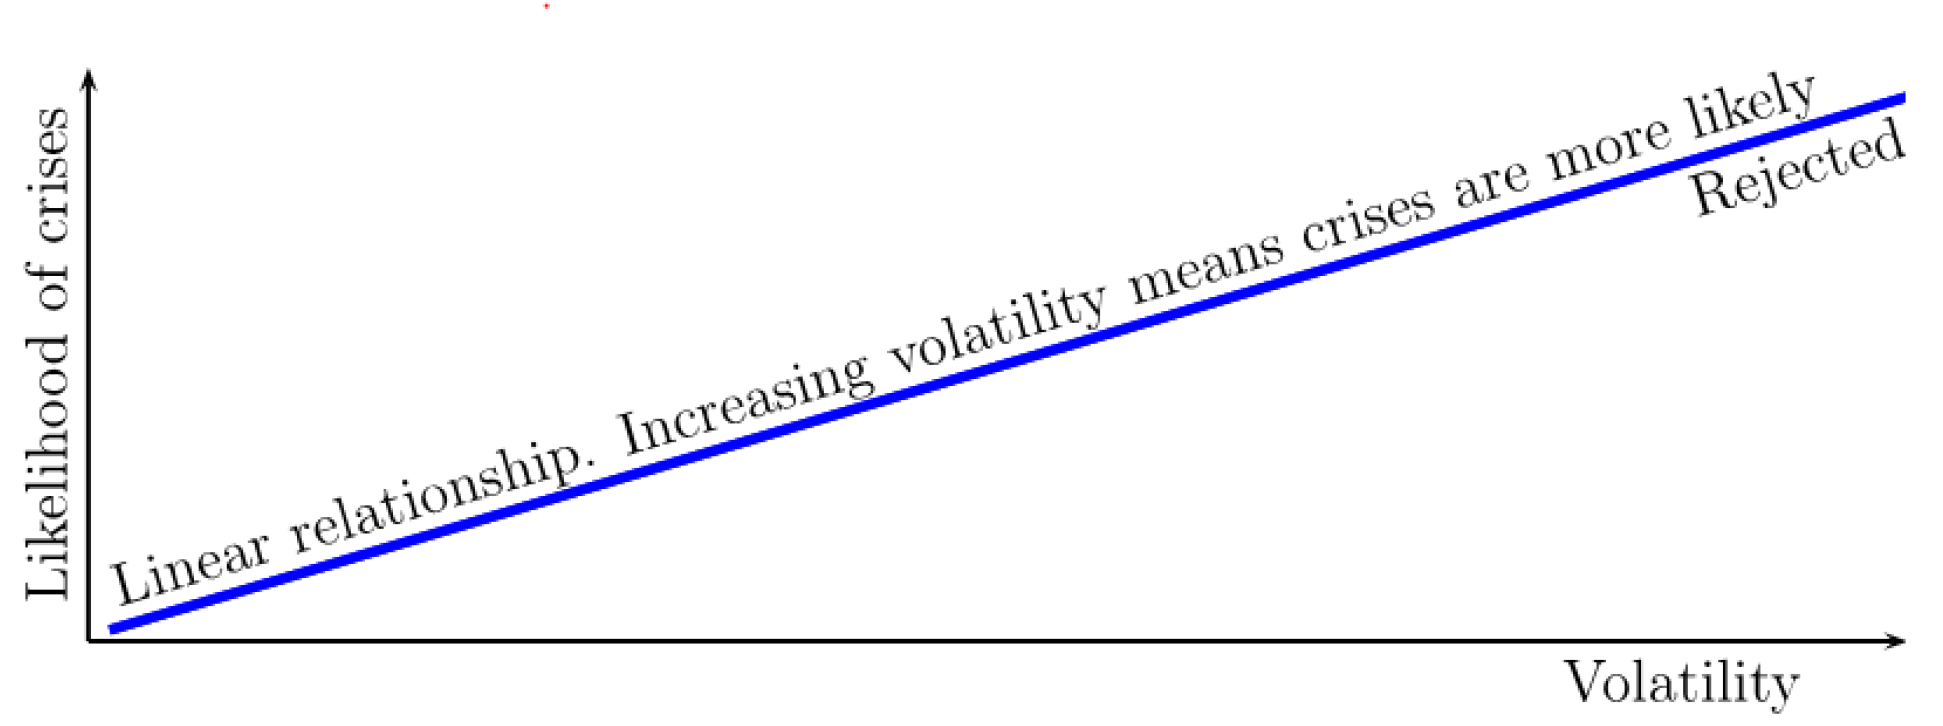 Figure 2. Volatility as predictor of crises. See accessible link for data description.